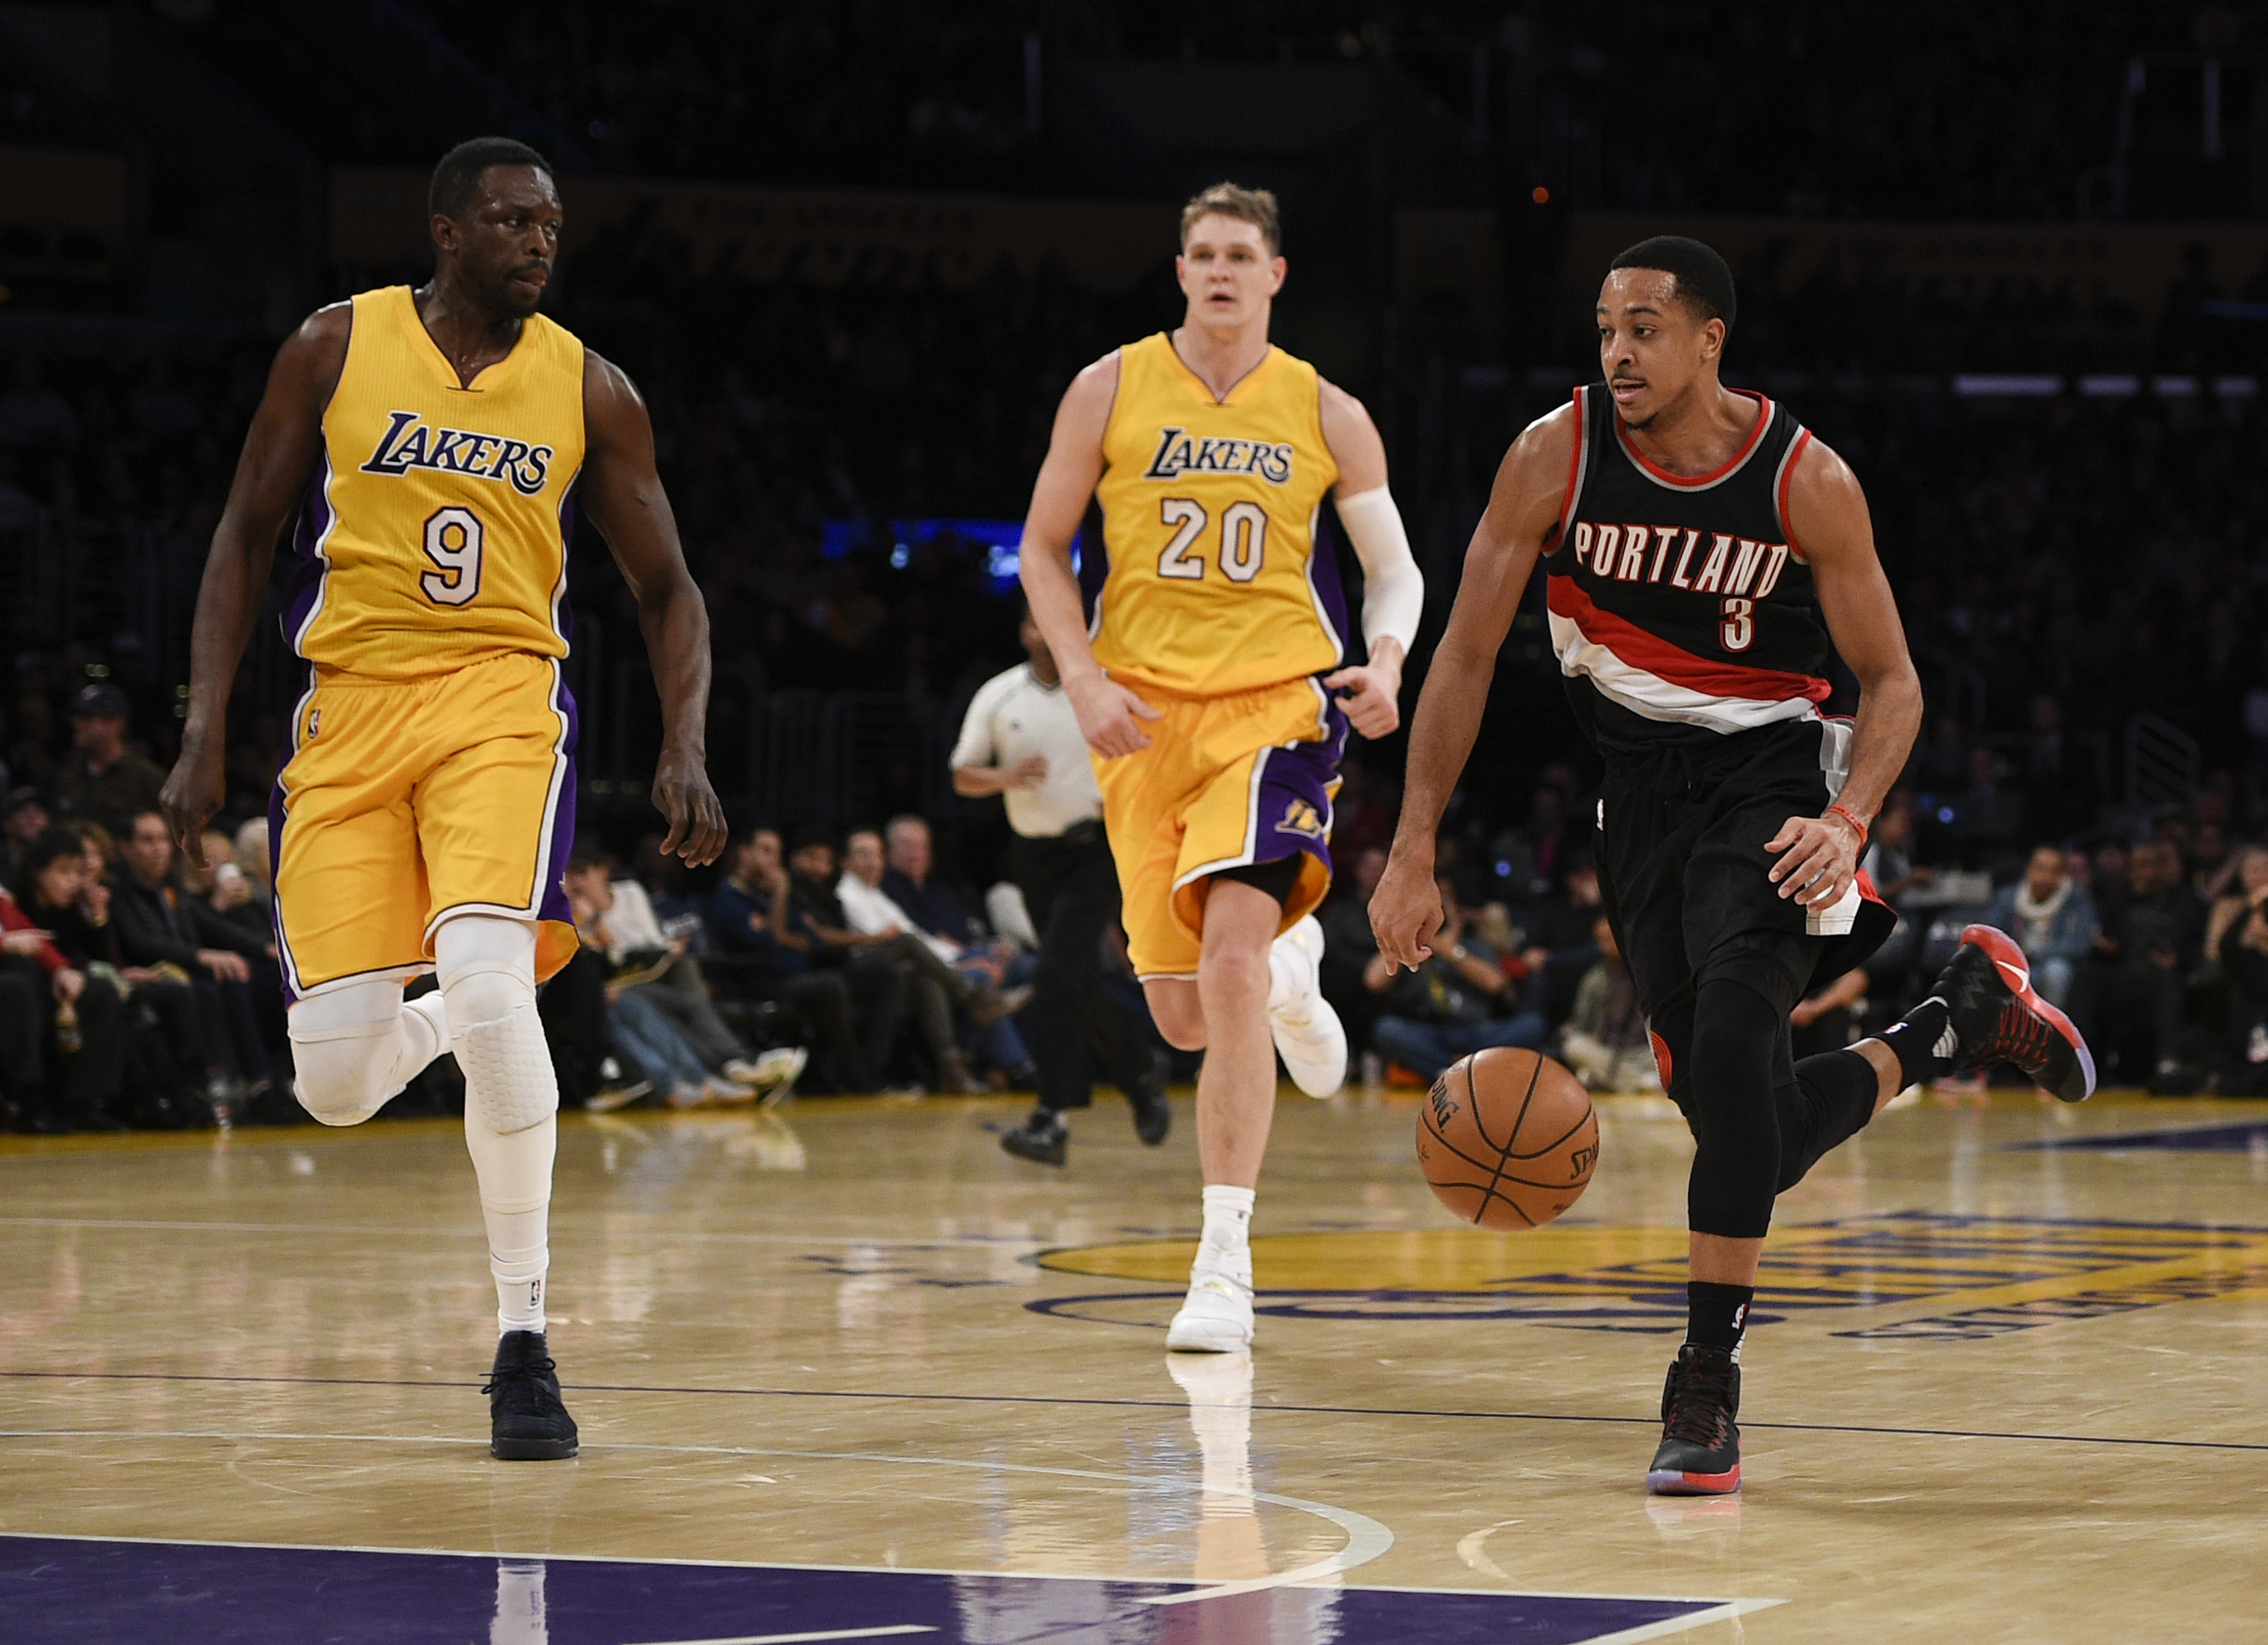 9803212-nba-portland-trail-blazers-at-los-angeles-lakers